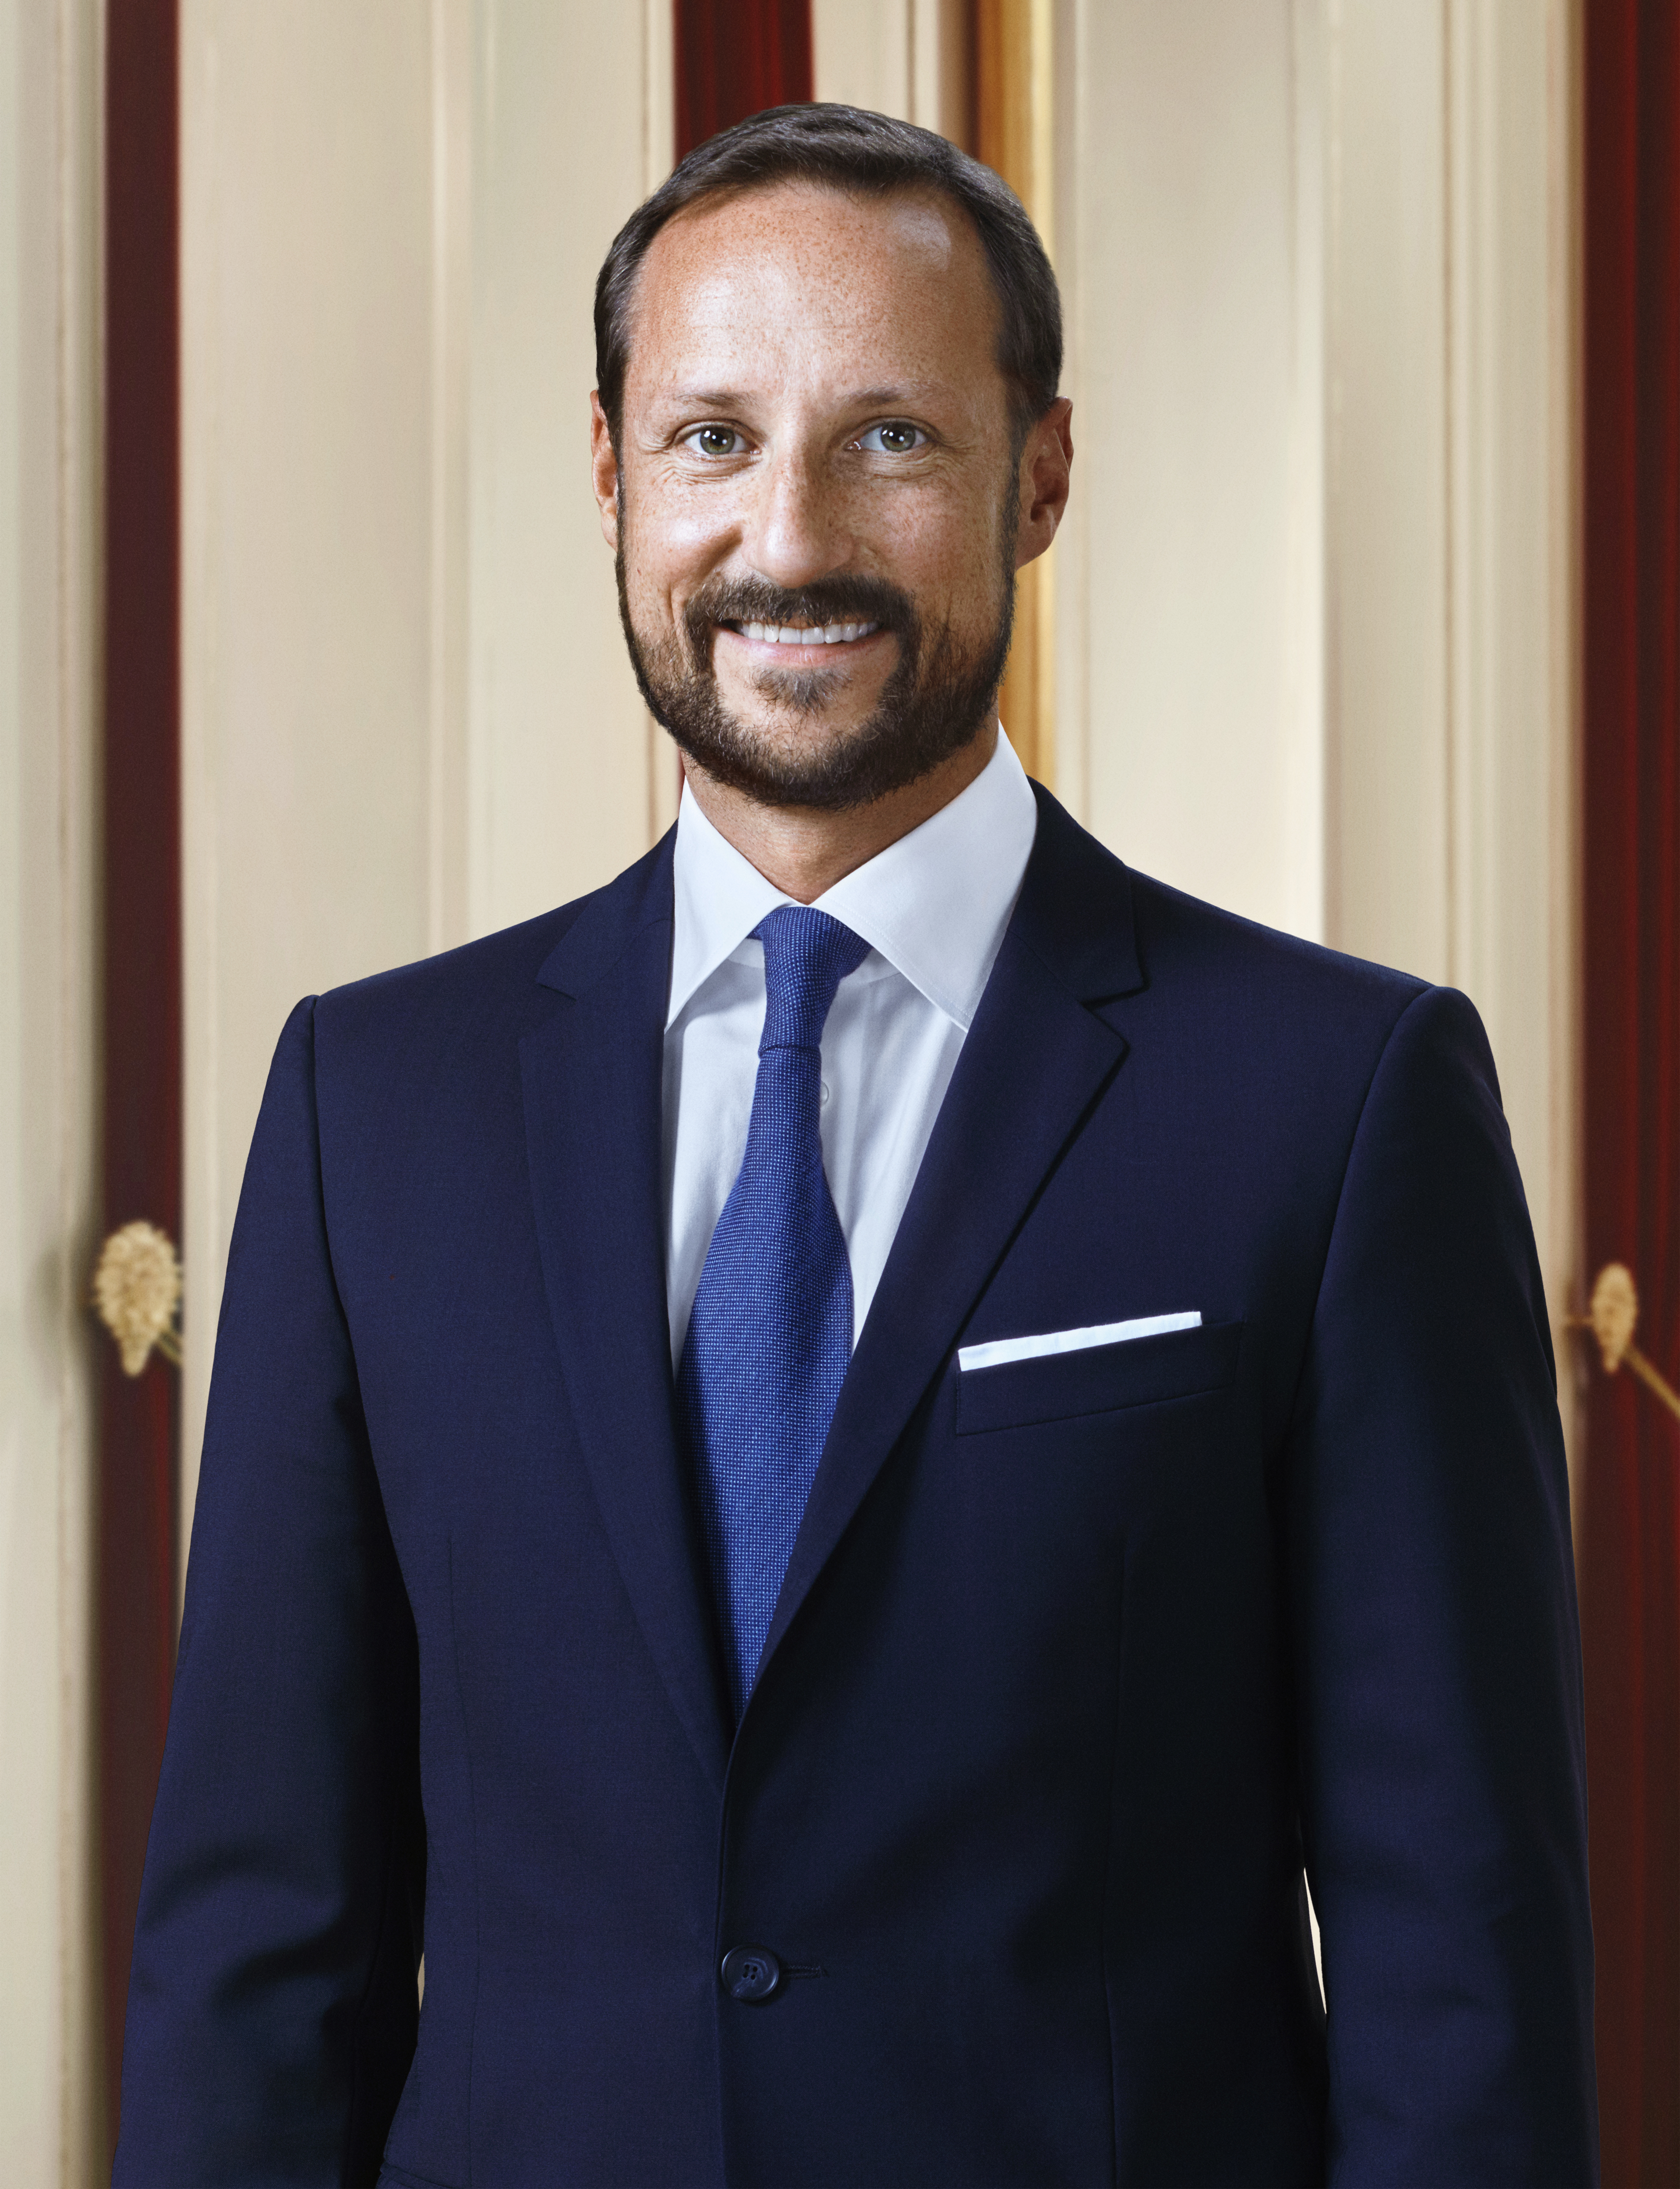 Crown Prince Haakon. Photo: Jørgen Gomnæs / Det kongelige hoff / The Royal Court.